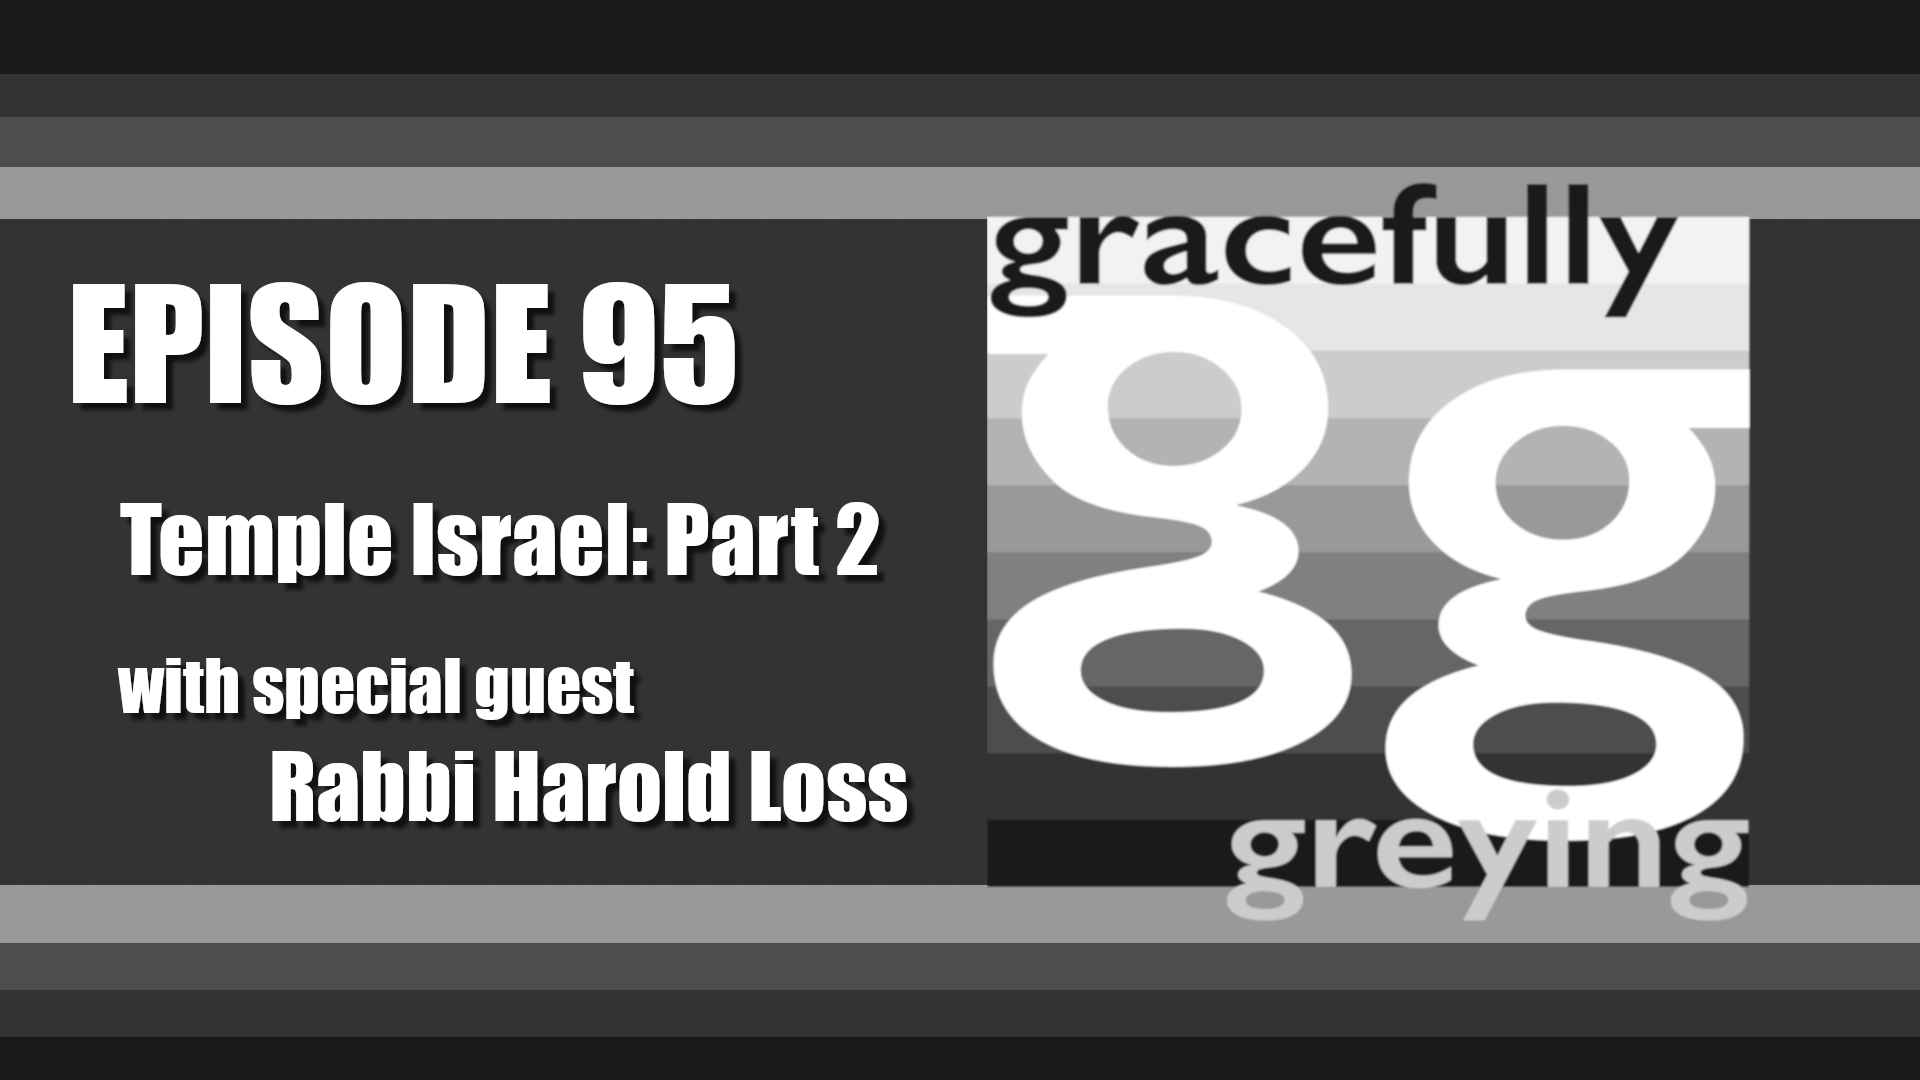 Gracefully Greying - Episode 95 - Temple Israel: Part 2